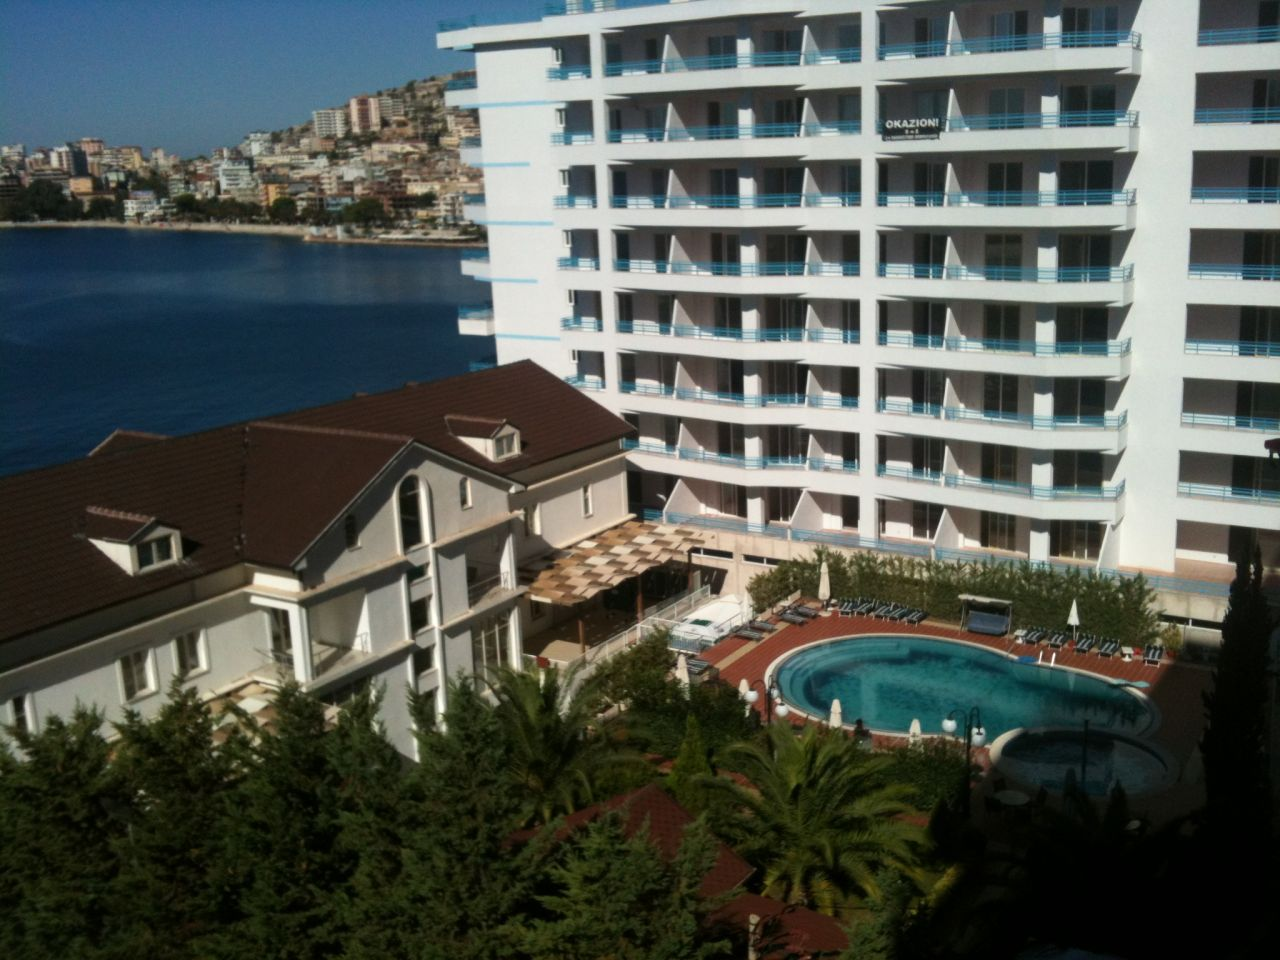 Rent Holiday Apartment in Sarande. Enjoy Vacation in Albania.